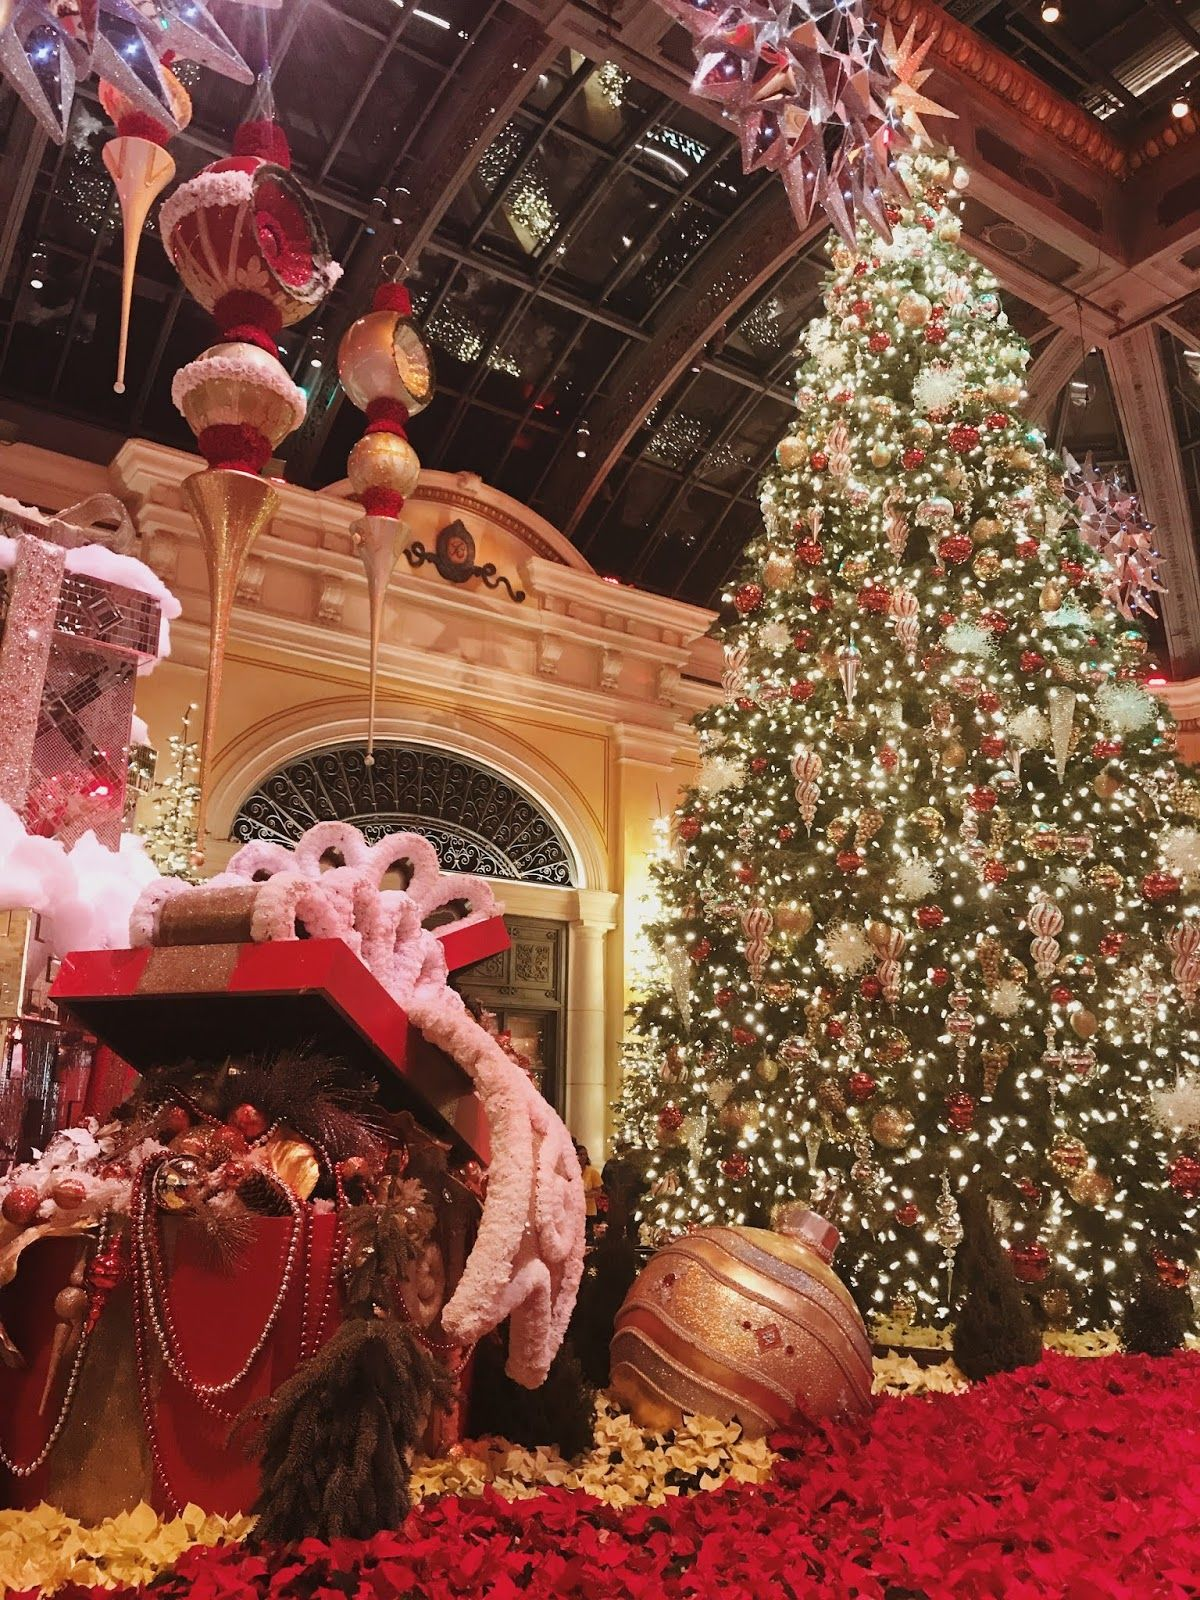 The Traveler Guide to Christmas and New Year's Eve in Las